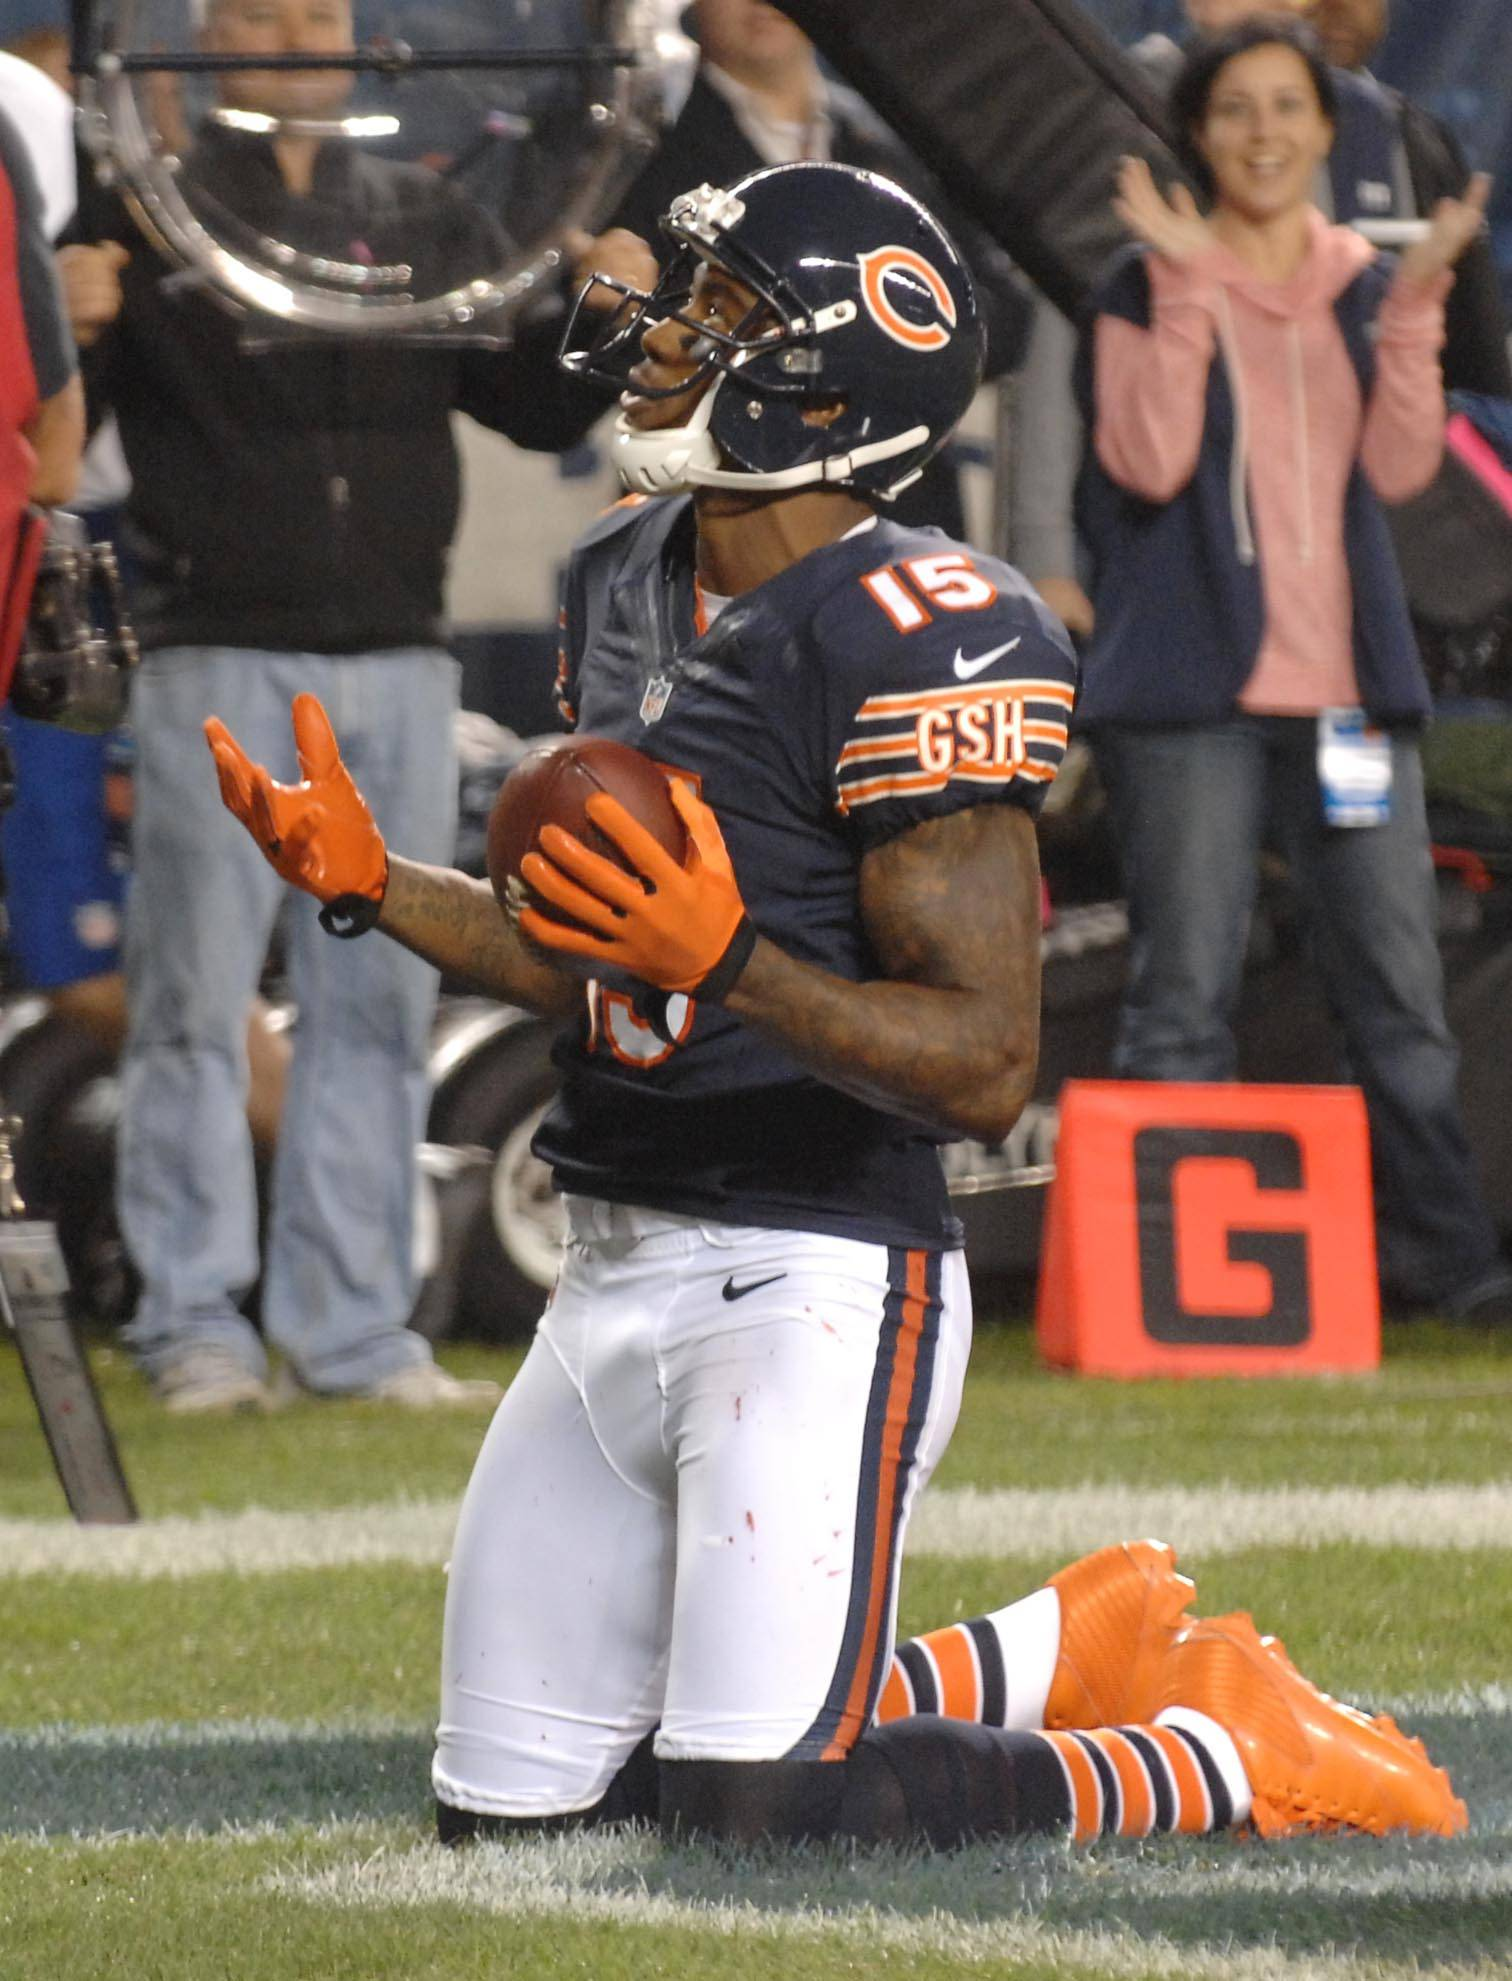 Turning 30 shouldn't slow down Bears' Marshall